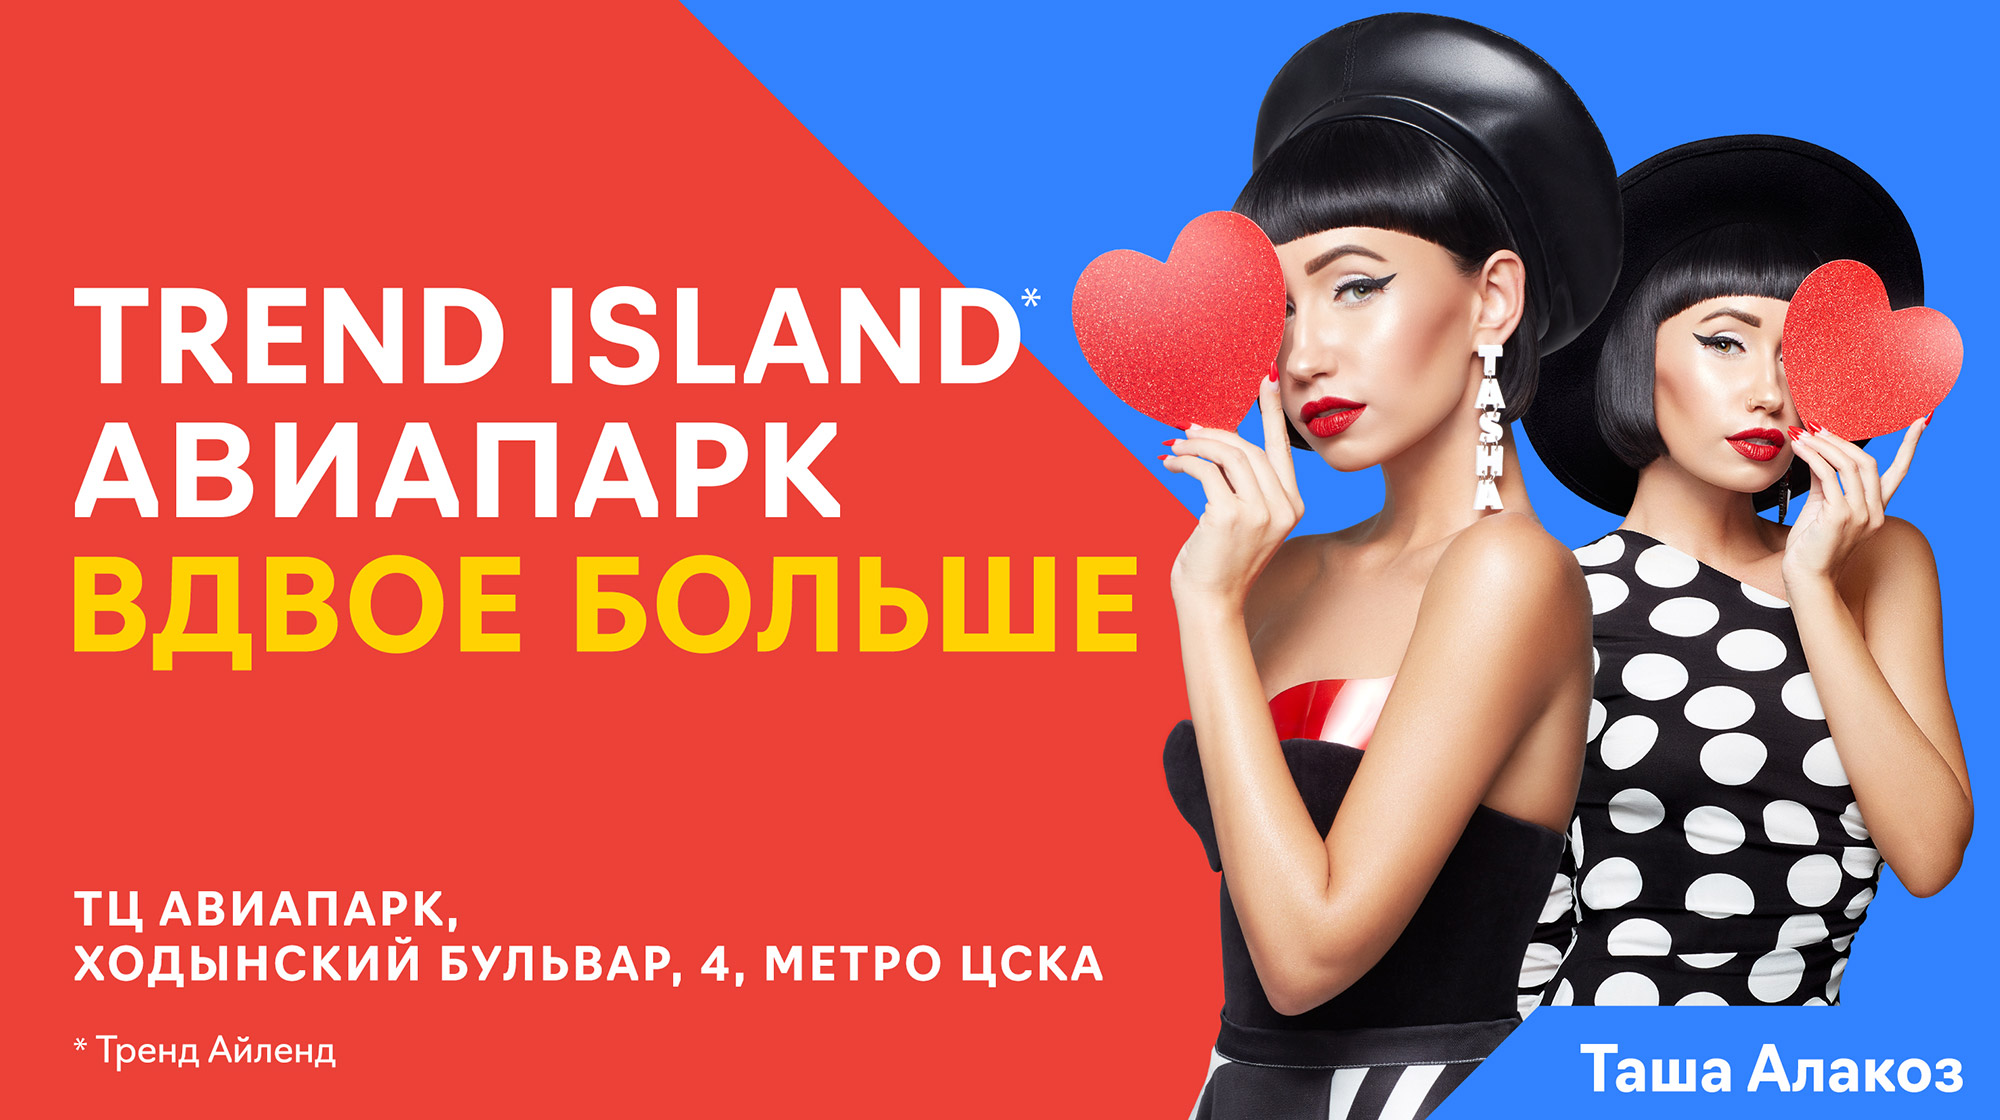 TREND ISLAND, Billboards & Indoor | Alexander Sakulin - Professional Photographer